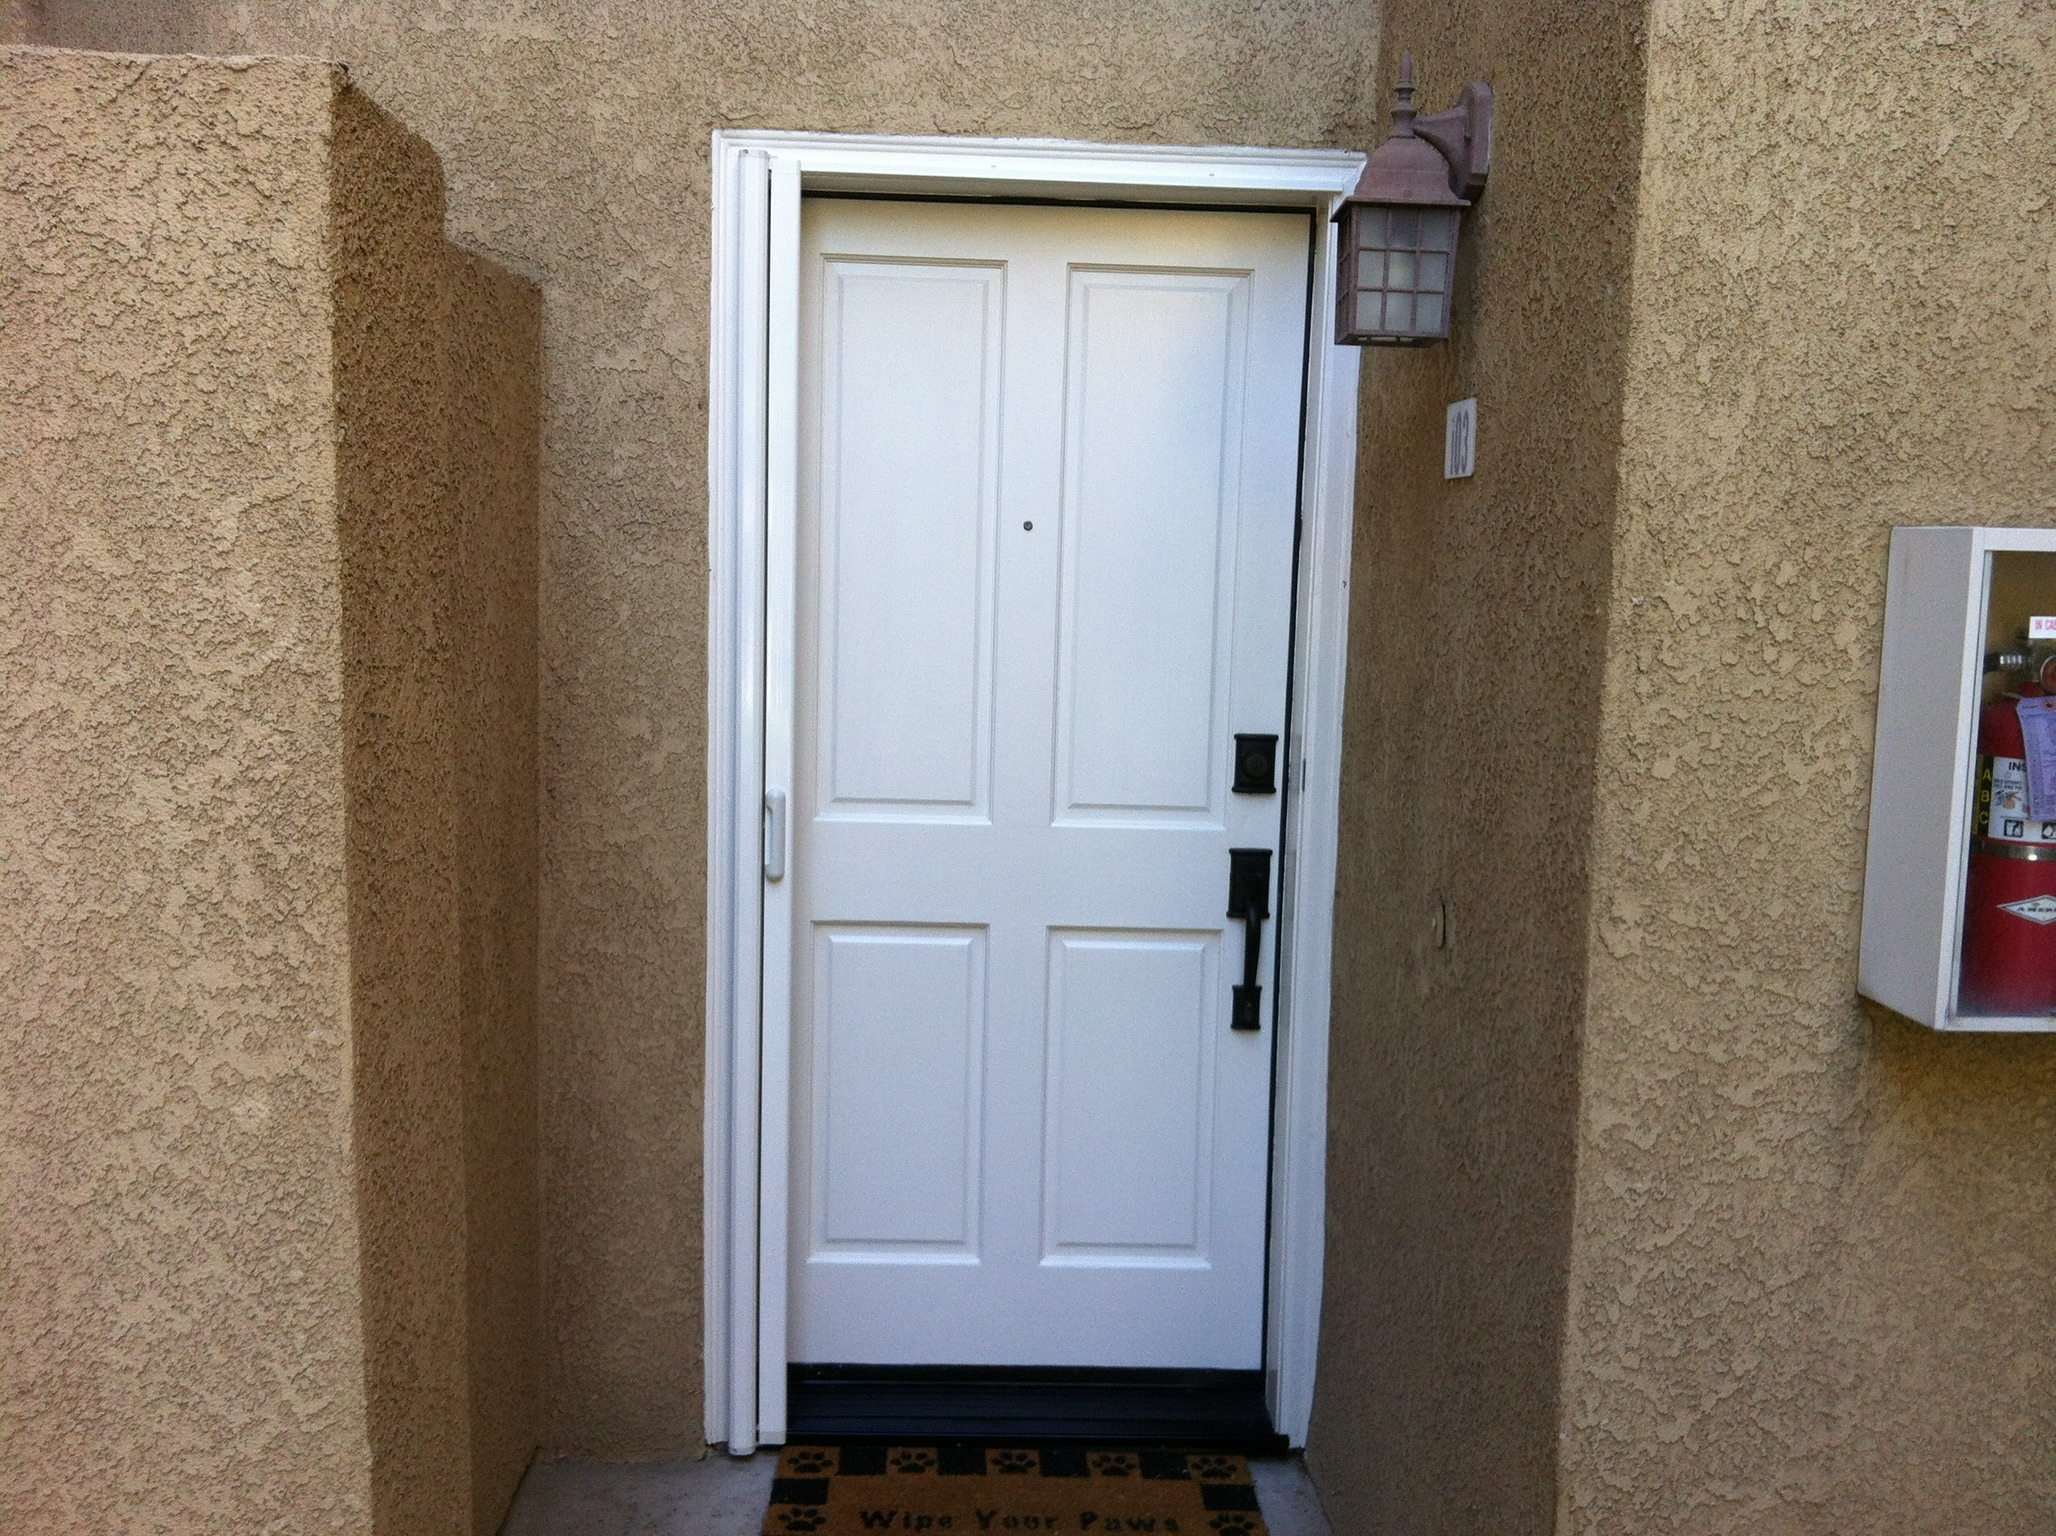 Off white Mirage retractable screen door installed in Corona 9/12/13